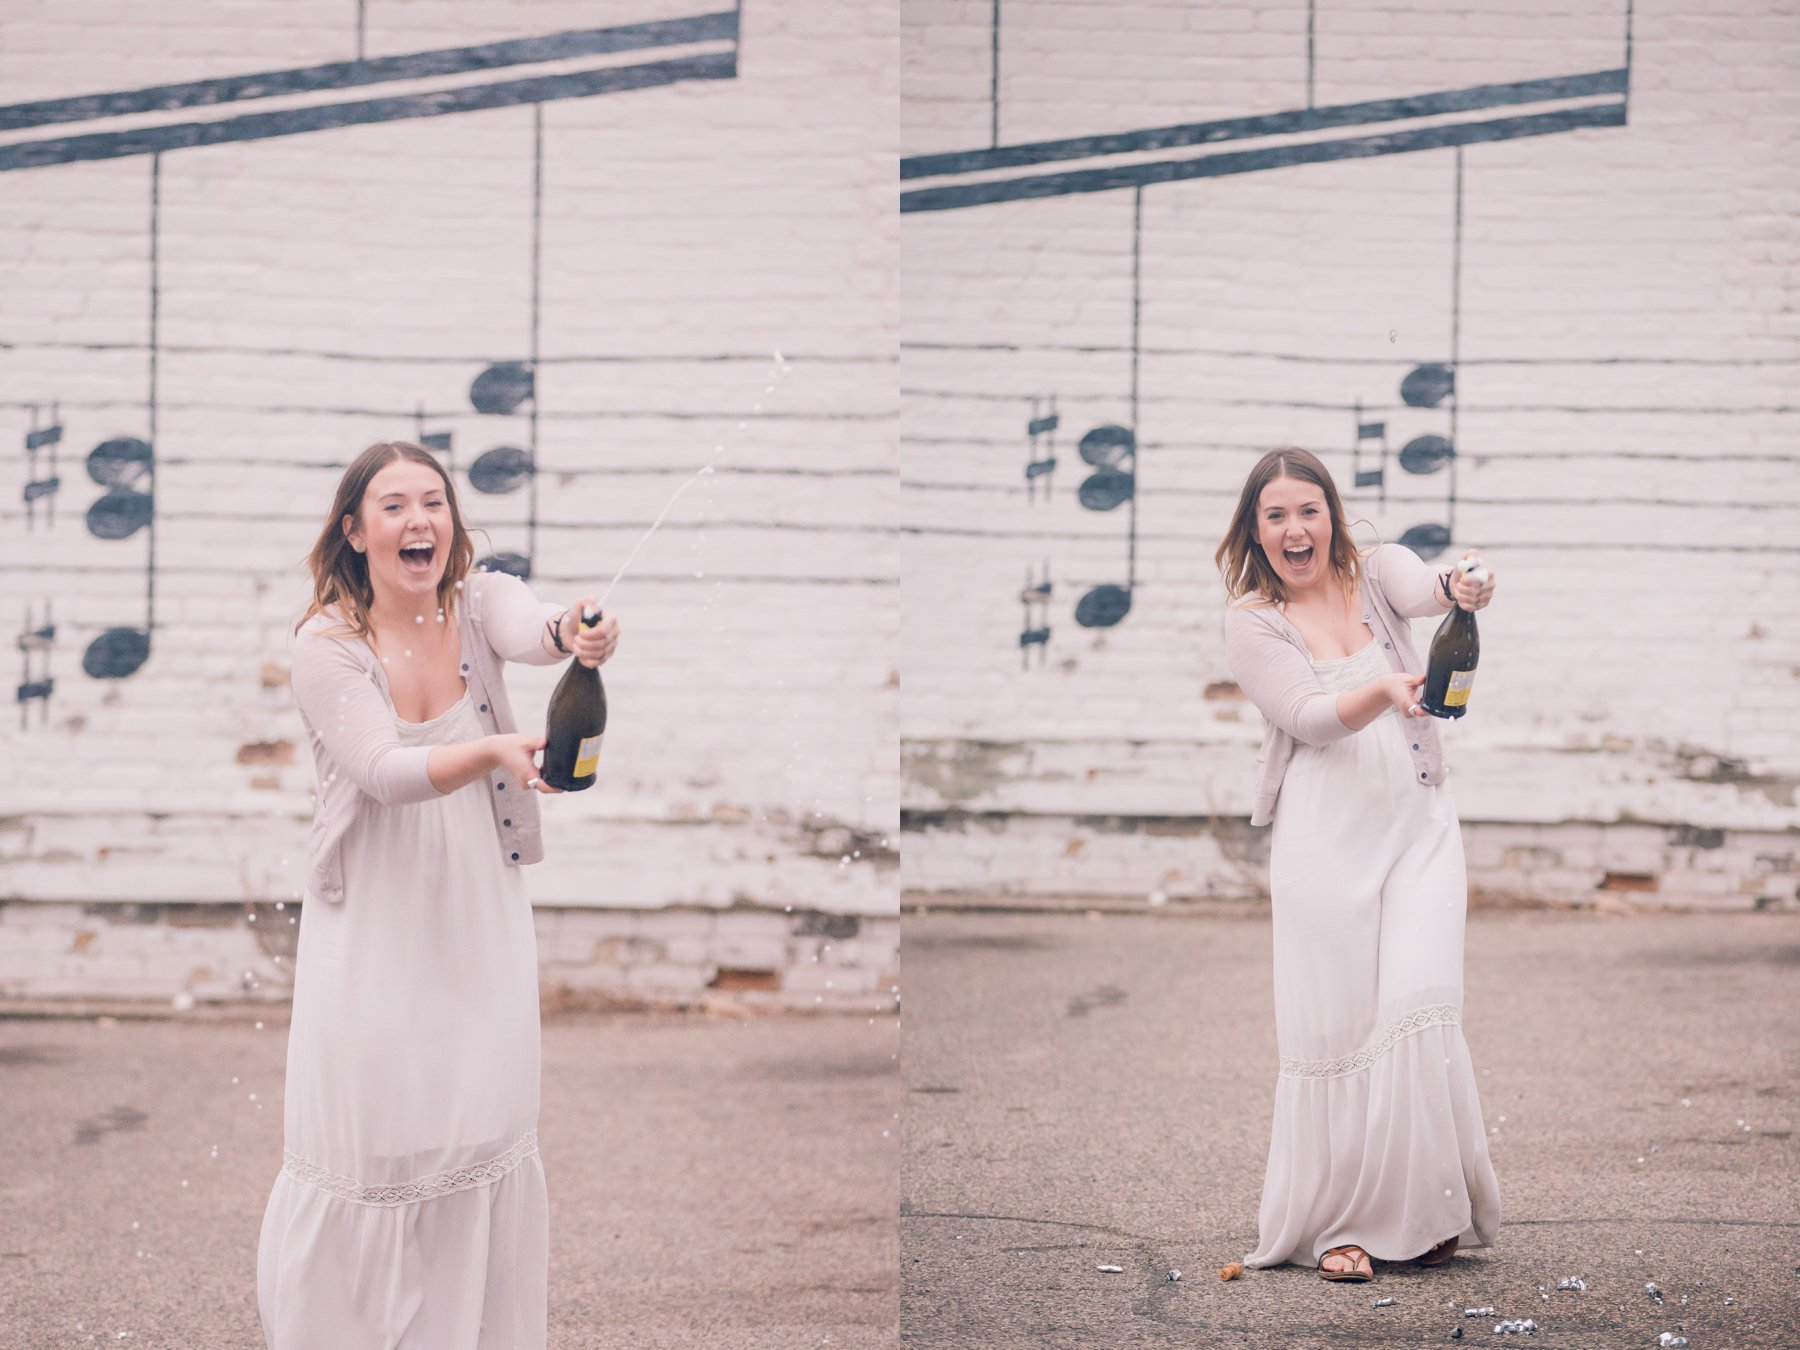 birthday, 21, vegan, champagne, photosshoot, birthday freebies, twentyone, minneapolis, minnesota, brookklyn photo